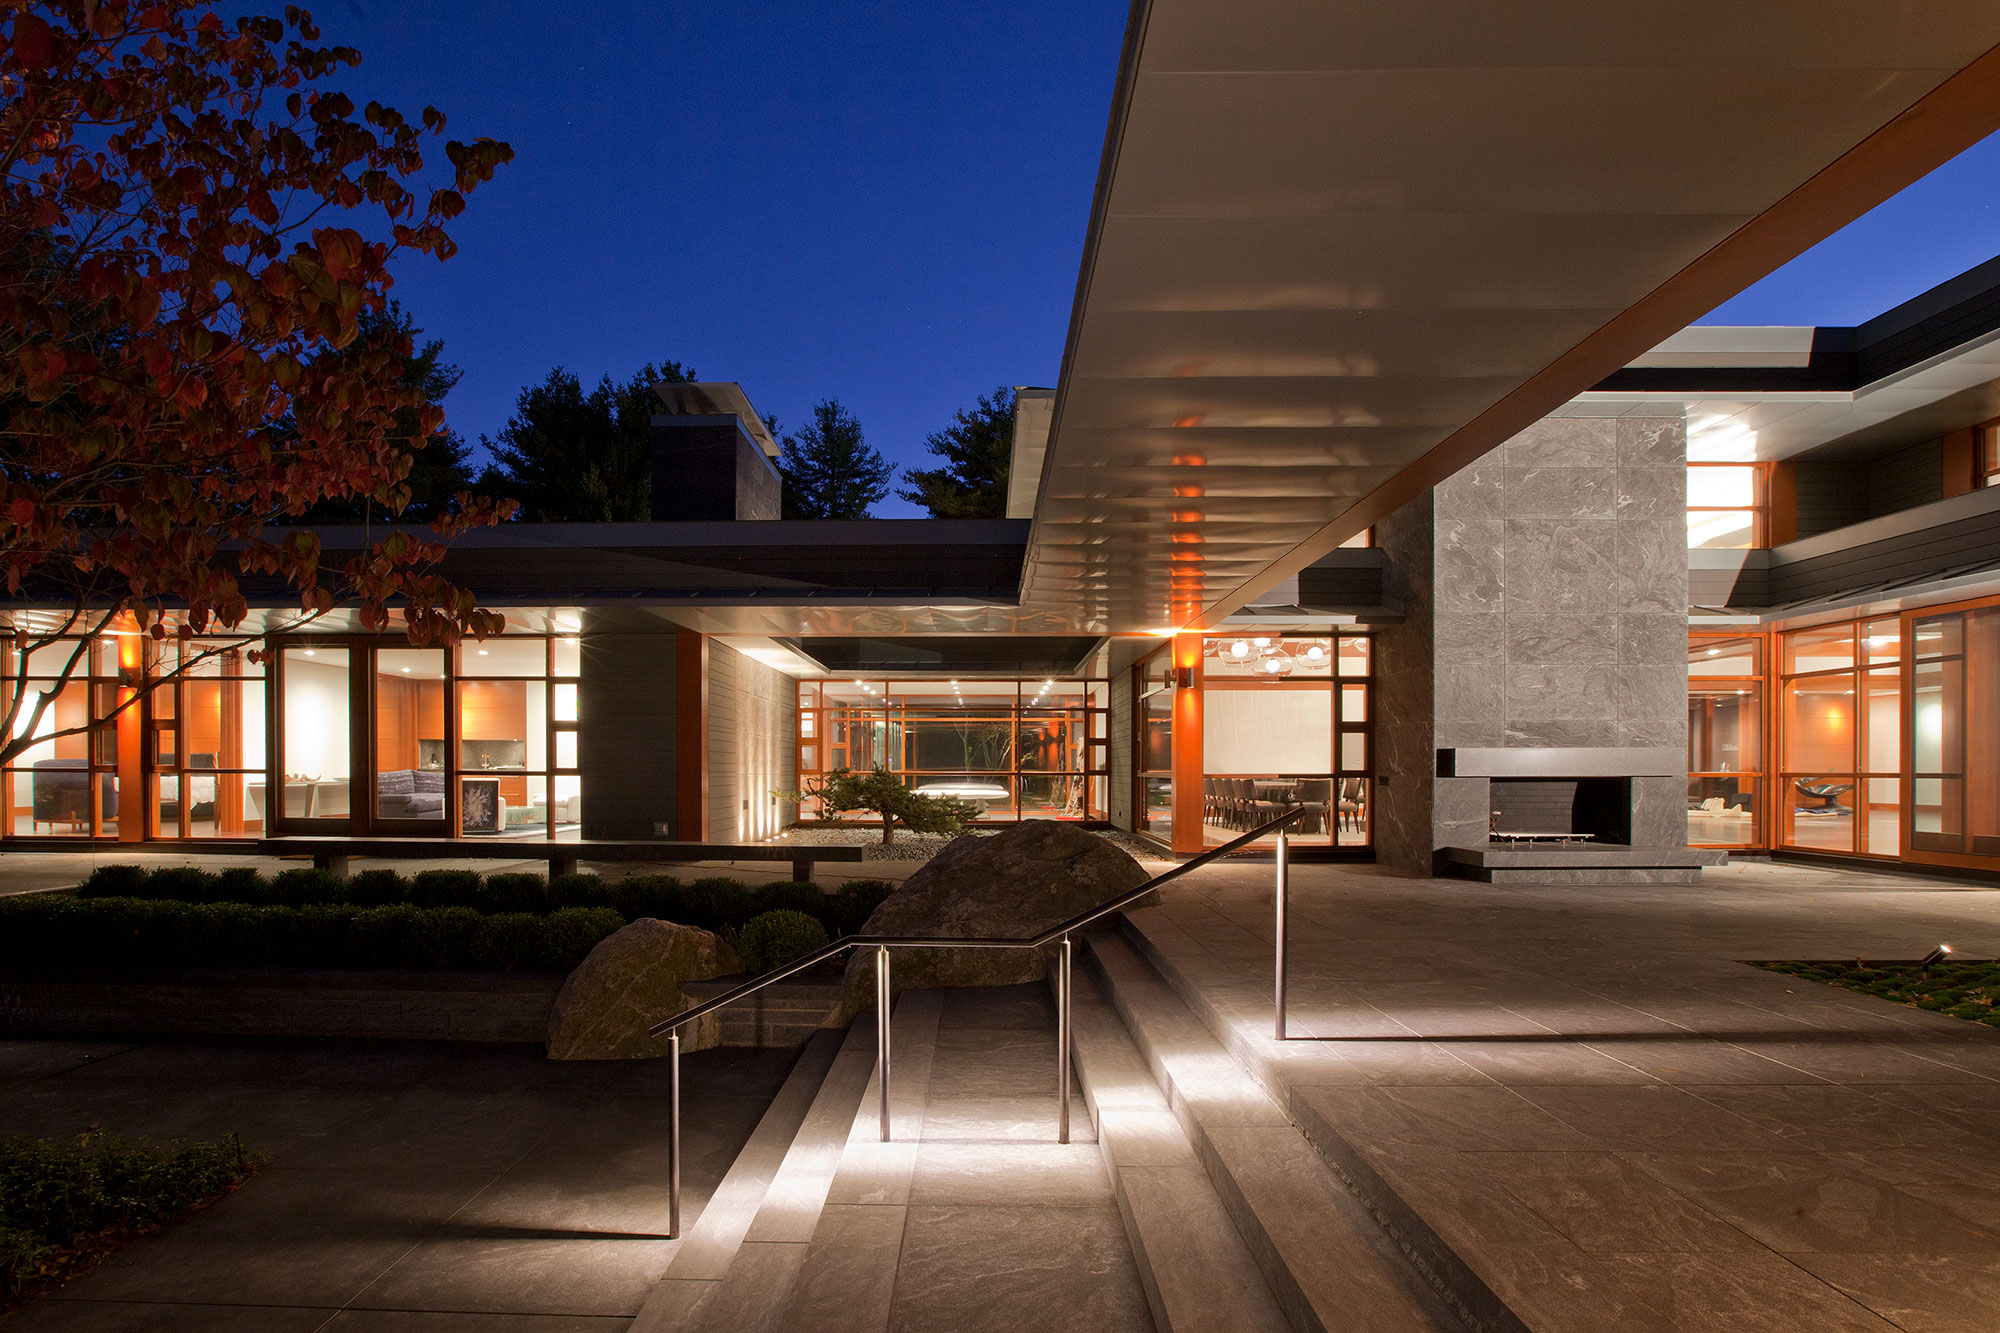 exterior of home from terrace glowing inside at dusk